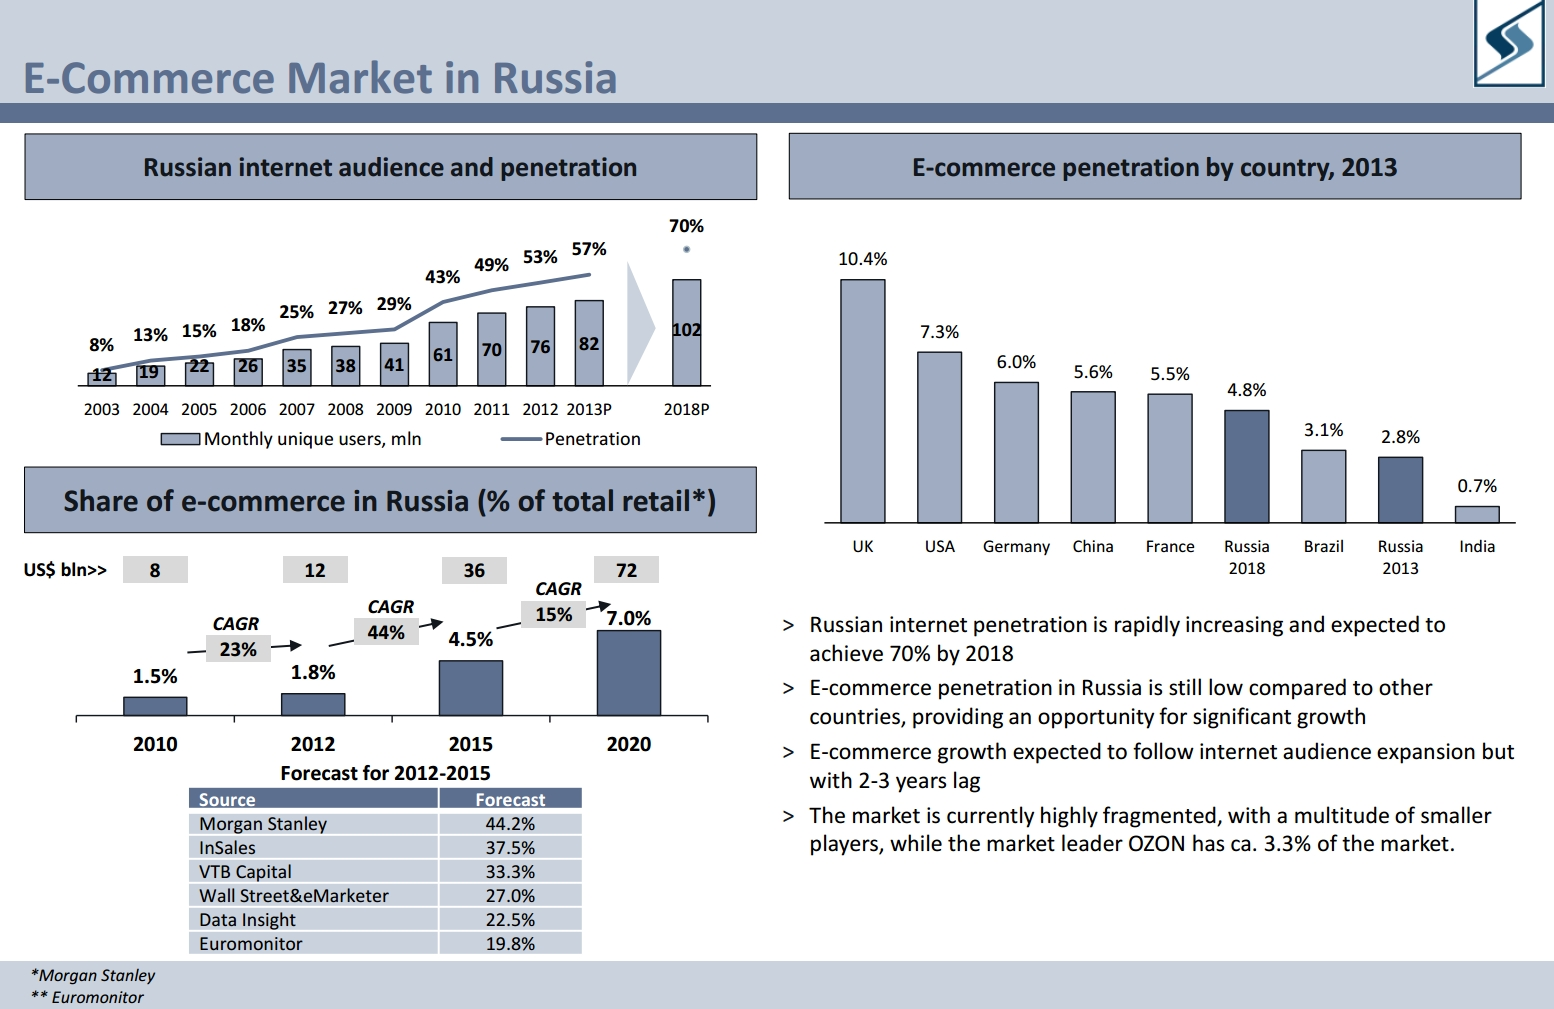 The ecommerce market in Russia